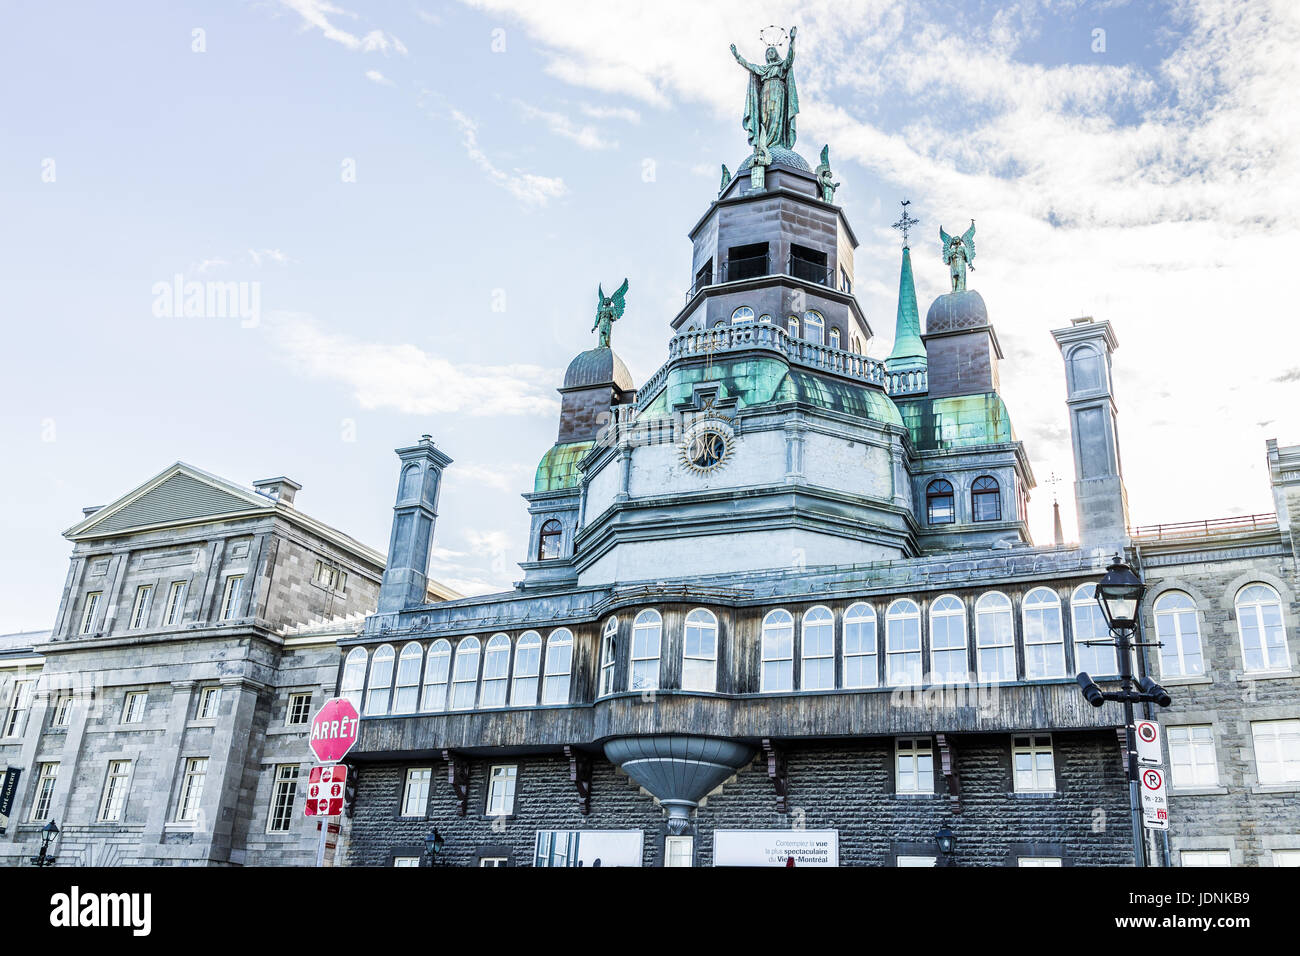 Montreal, Canada - May 27, 2017: Front exterior view of Chapelle Notre Dame de Bon secours in Quebec region during - Stock Image